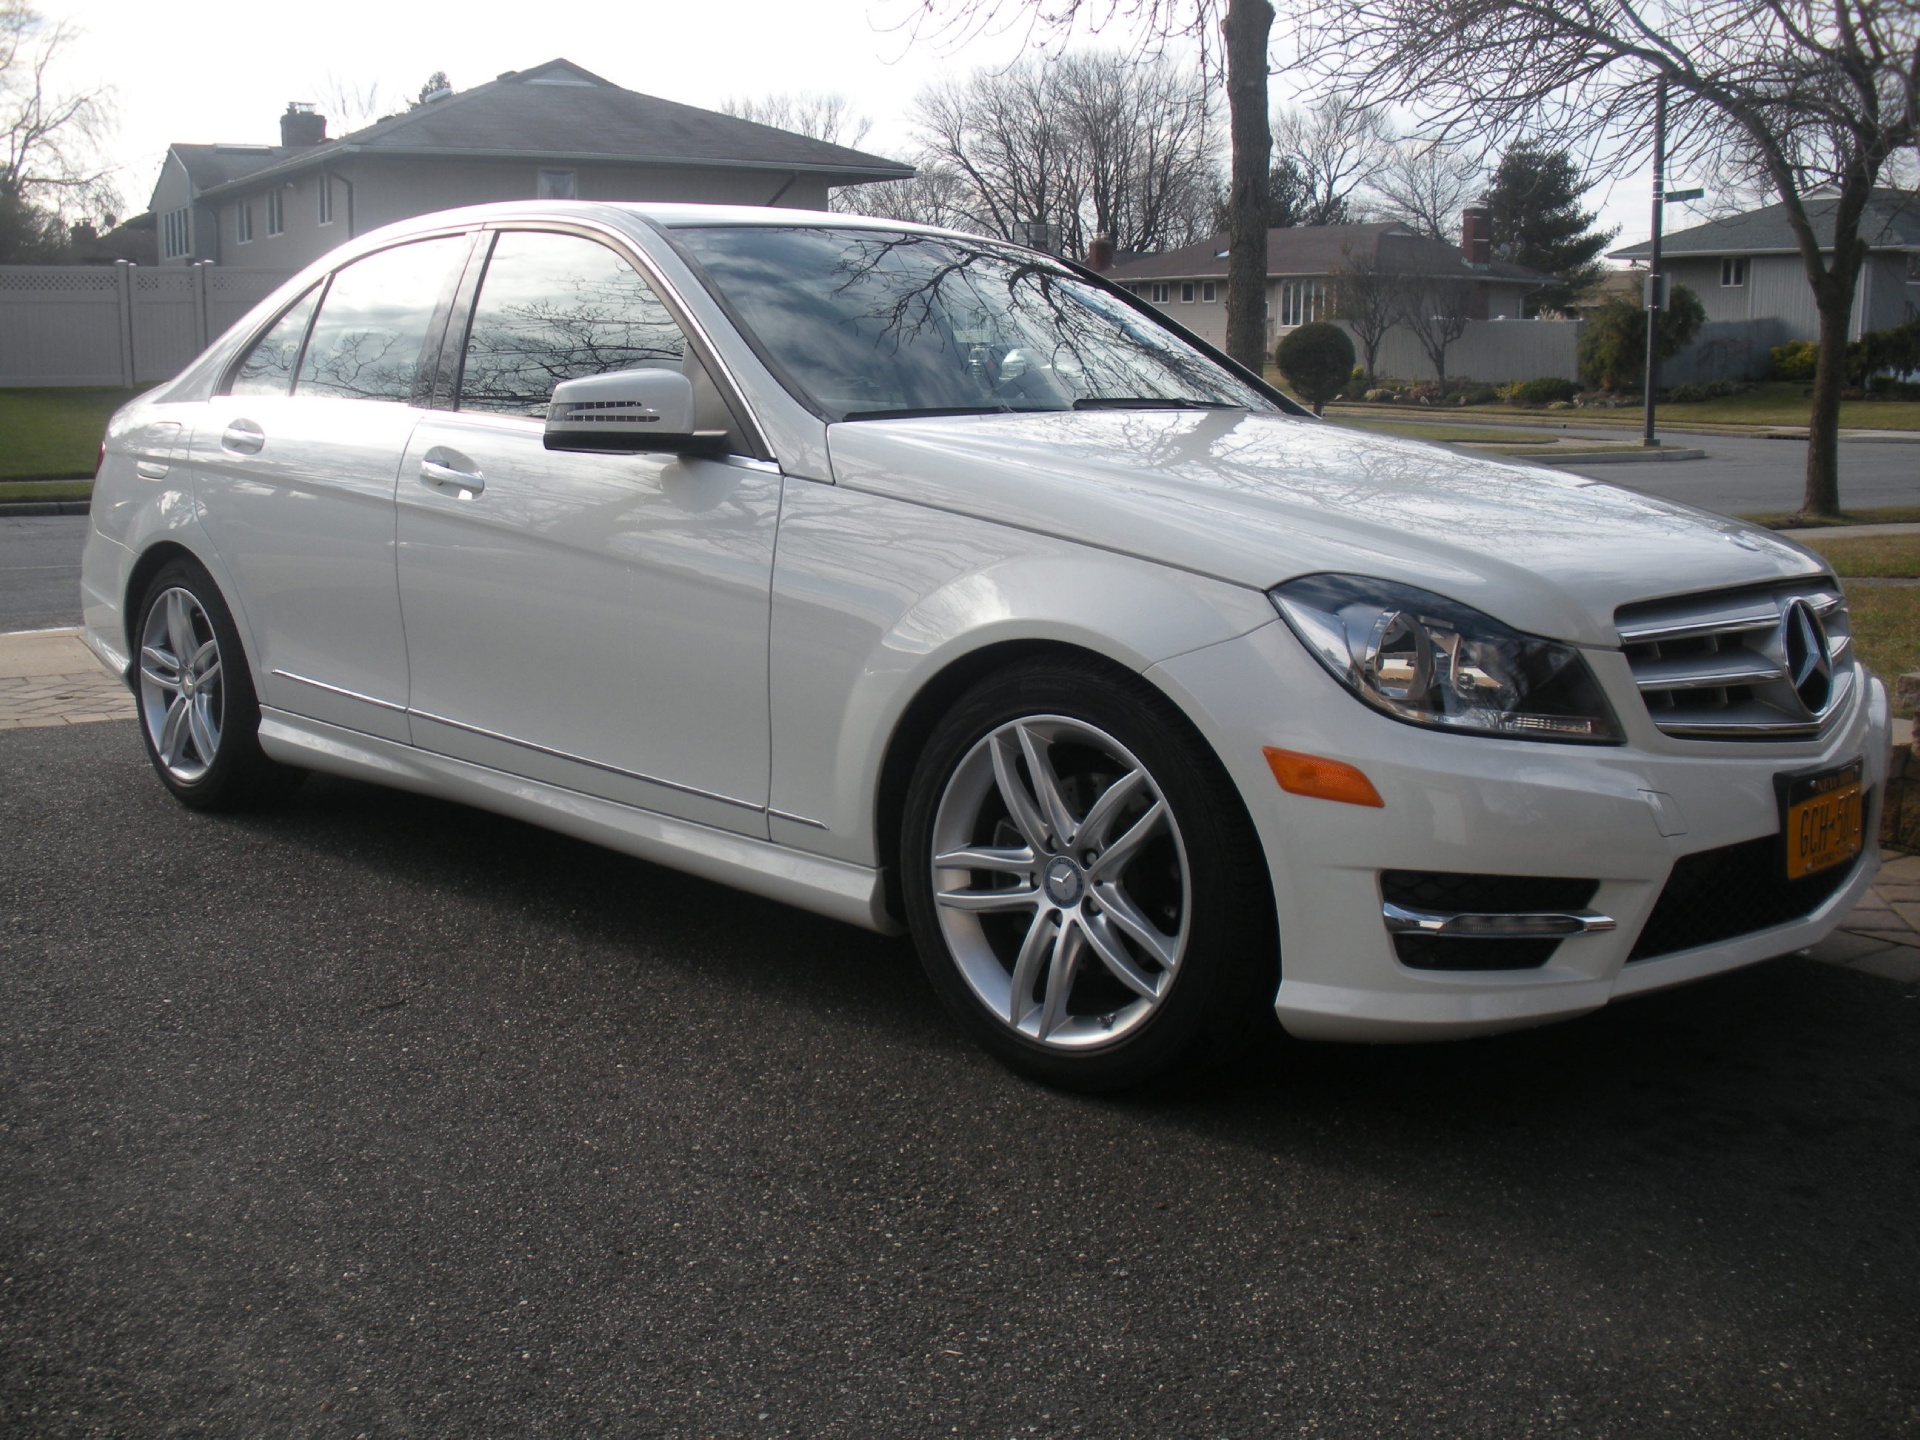 2012 mercedes benz c300 stock 2012mercedes1 for sale near new york ny ny mercedes benz dealer. Black Bedroom Furniture Sets. Home Design Ideas